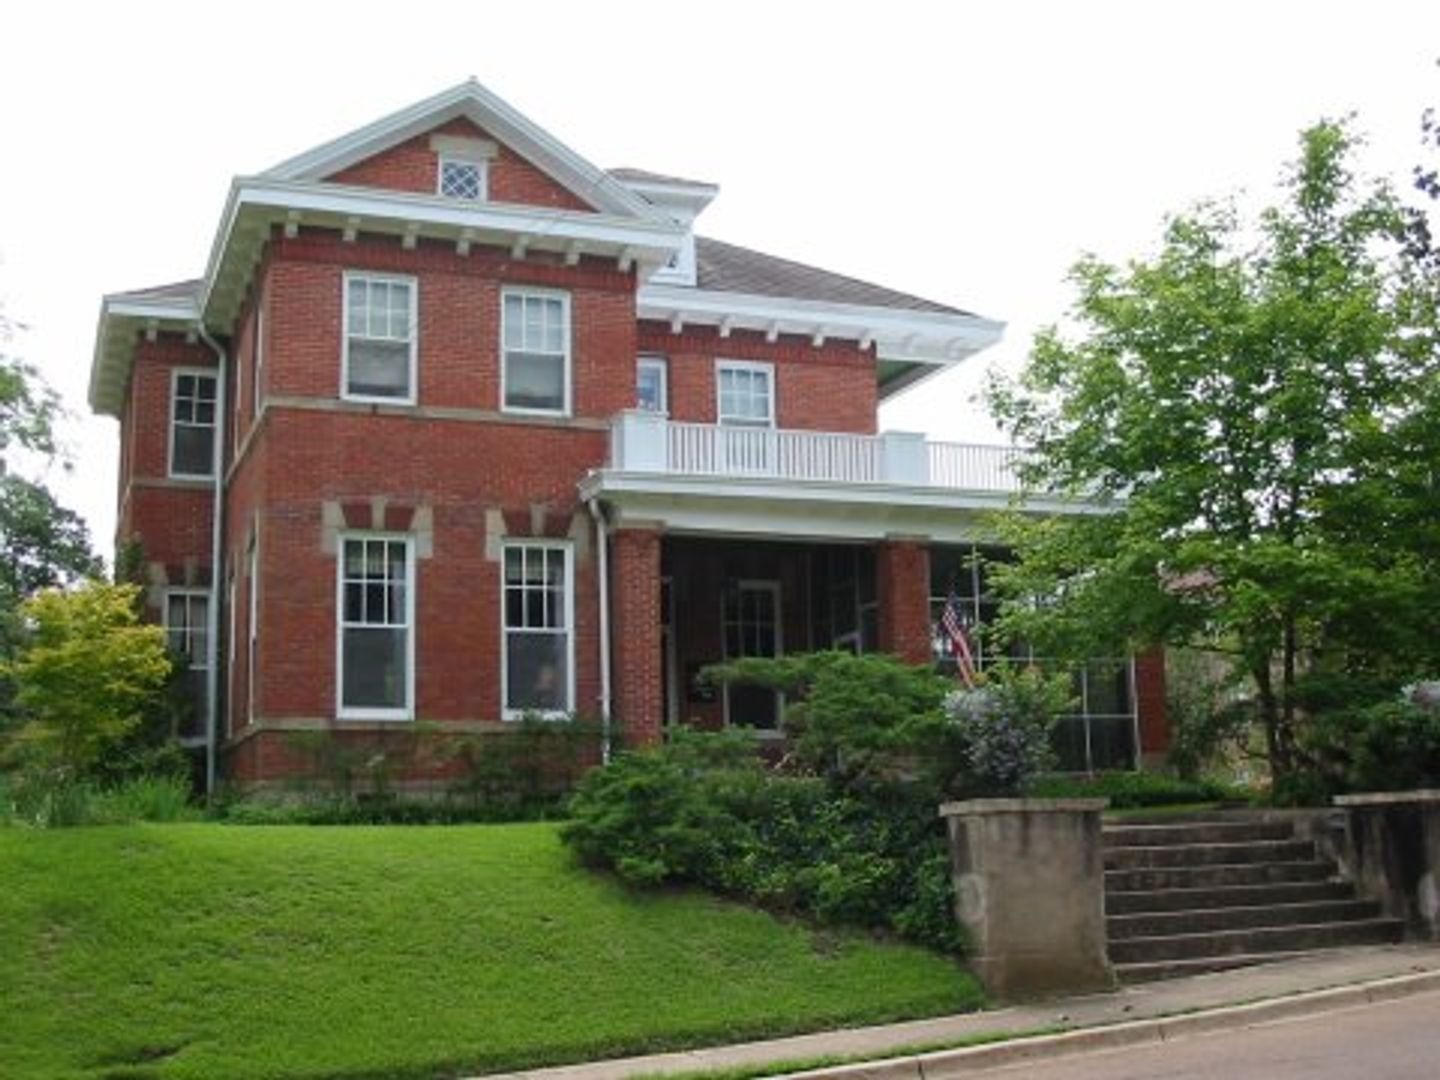 A large brick building with grass in front of a house at Maple Terrace Inn.